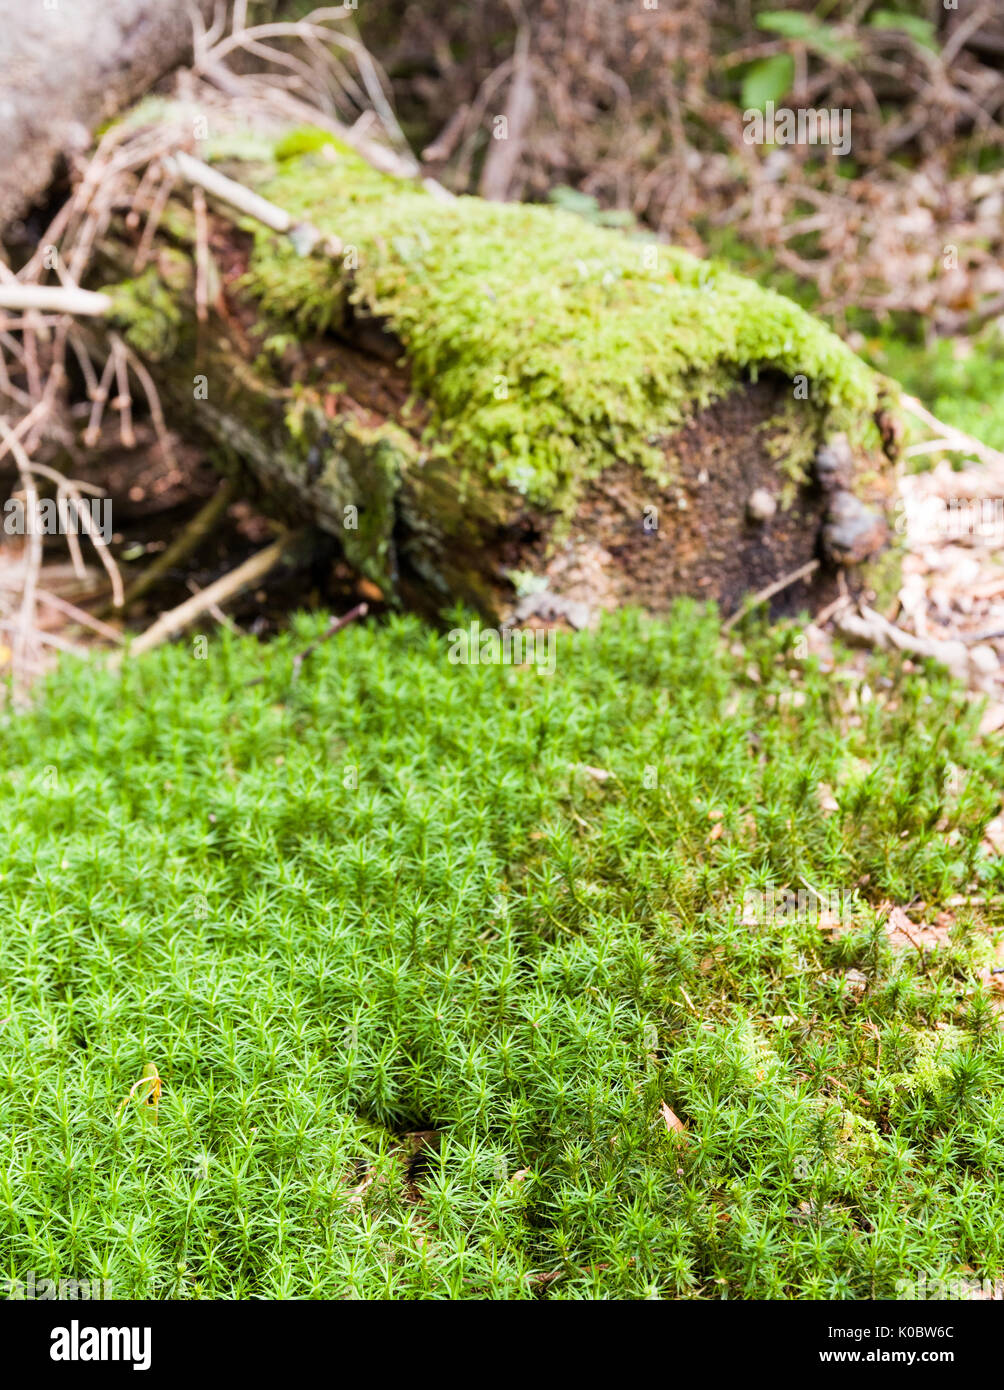 Patch of green moss (Bryophyte) in front of old fallen tree background also covered in green moss  Model Release: No.  Property Release: No. - Stock Image